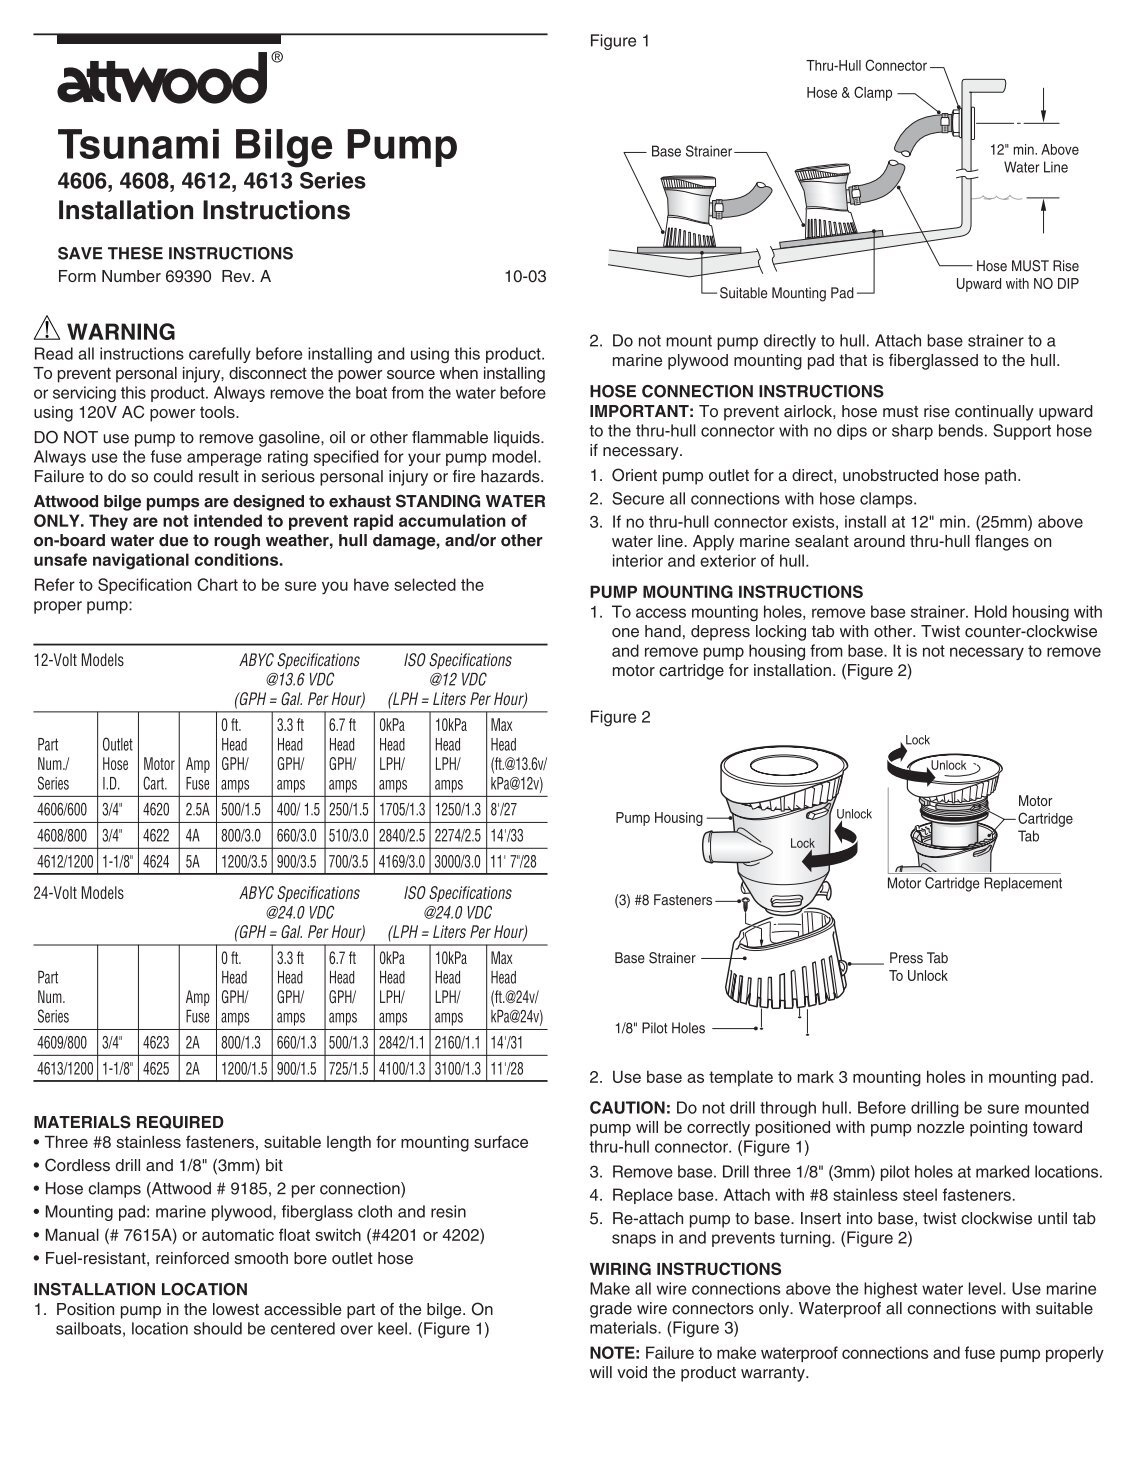 attwood tsunami bilge pump manual binnaclecom?quality\\\\\\=80 1989 mercury sable wiring diagram 1989 mercury tracer wiring 1995 mercury tracer wiring diagram at edmiracle.co